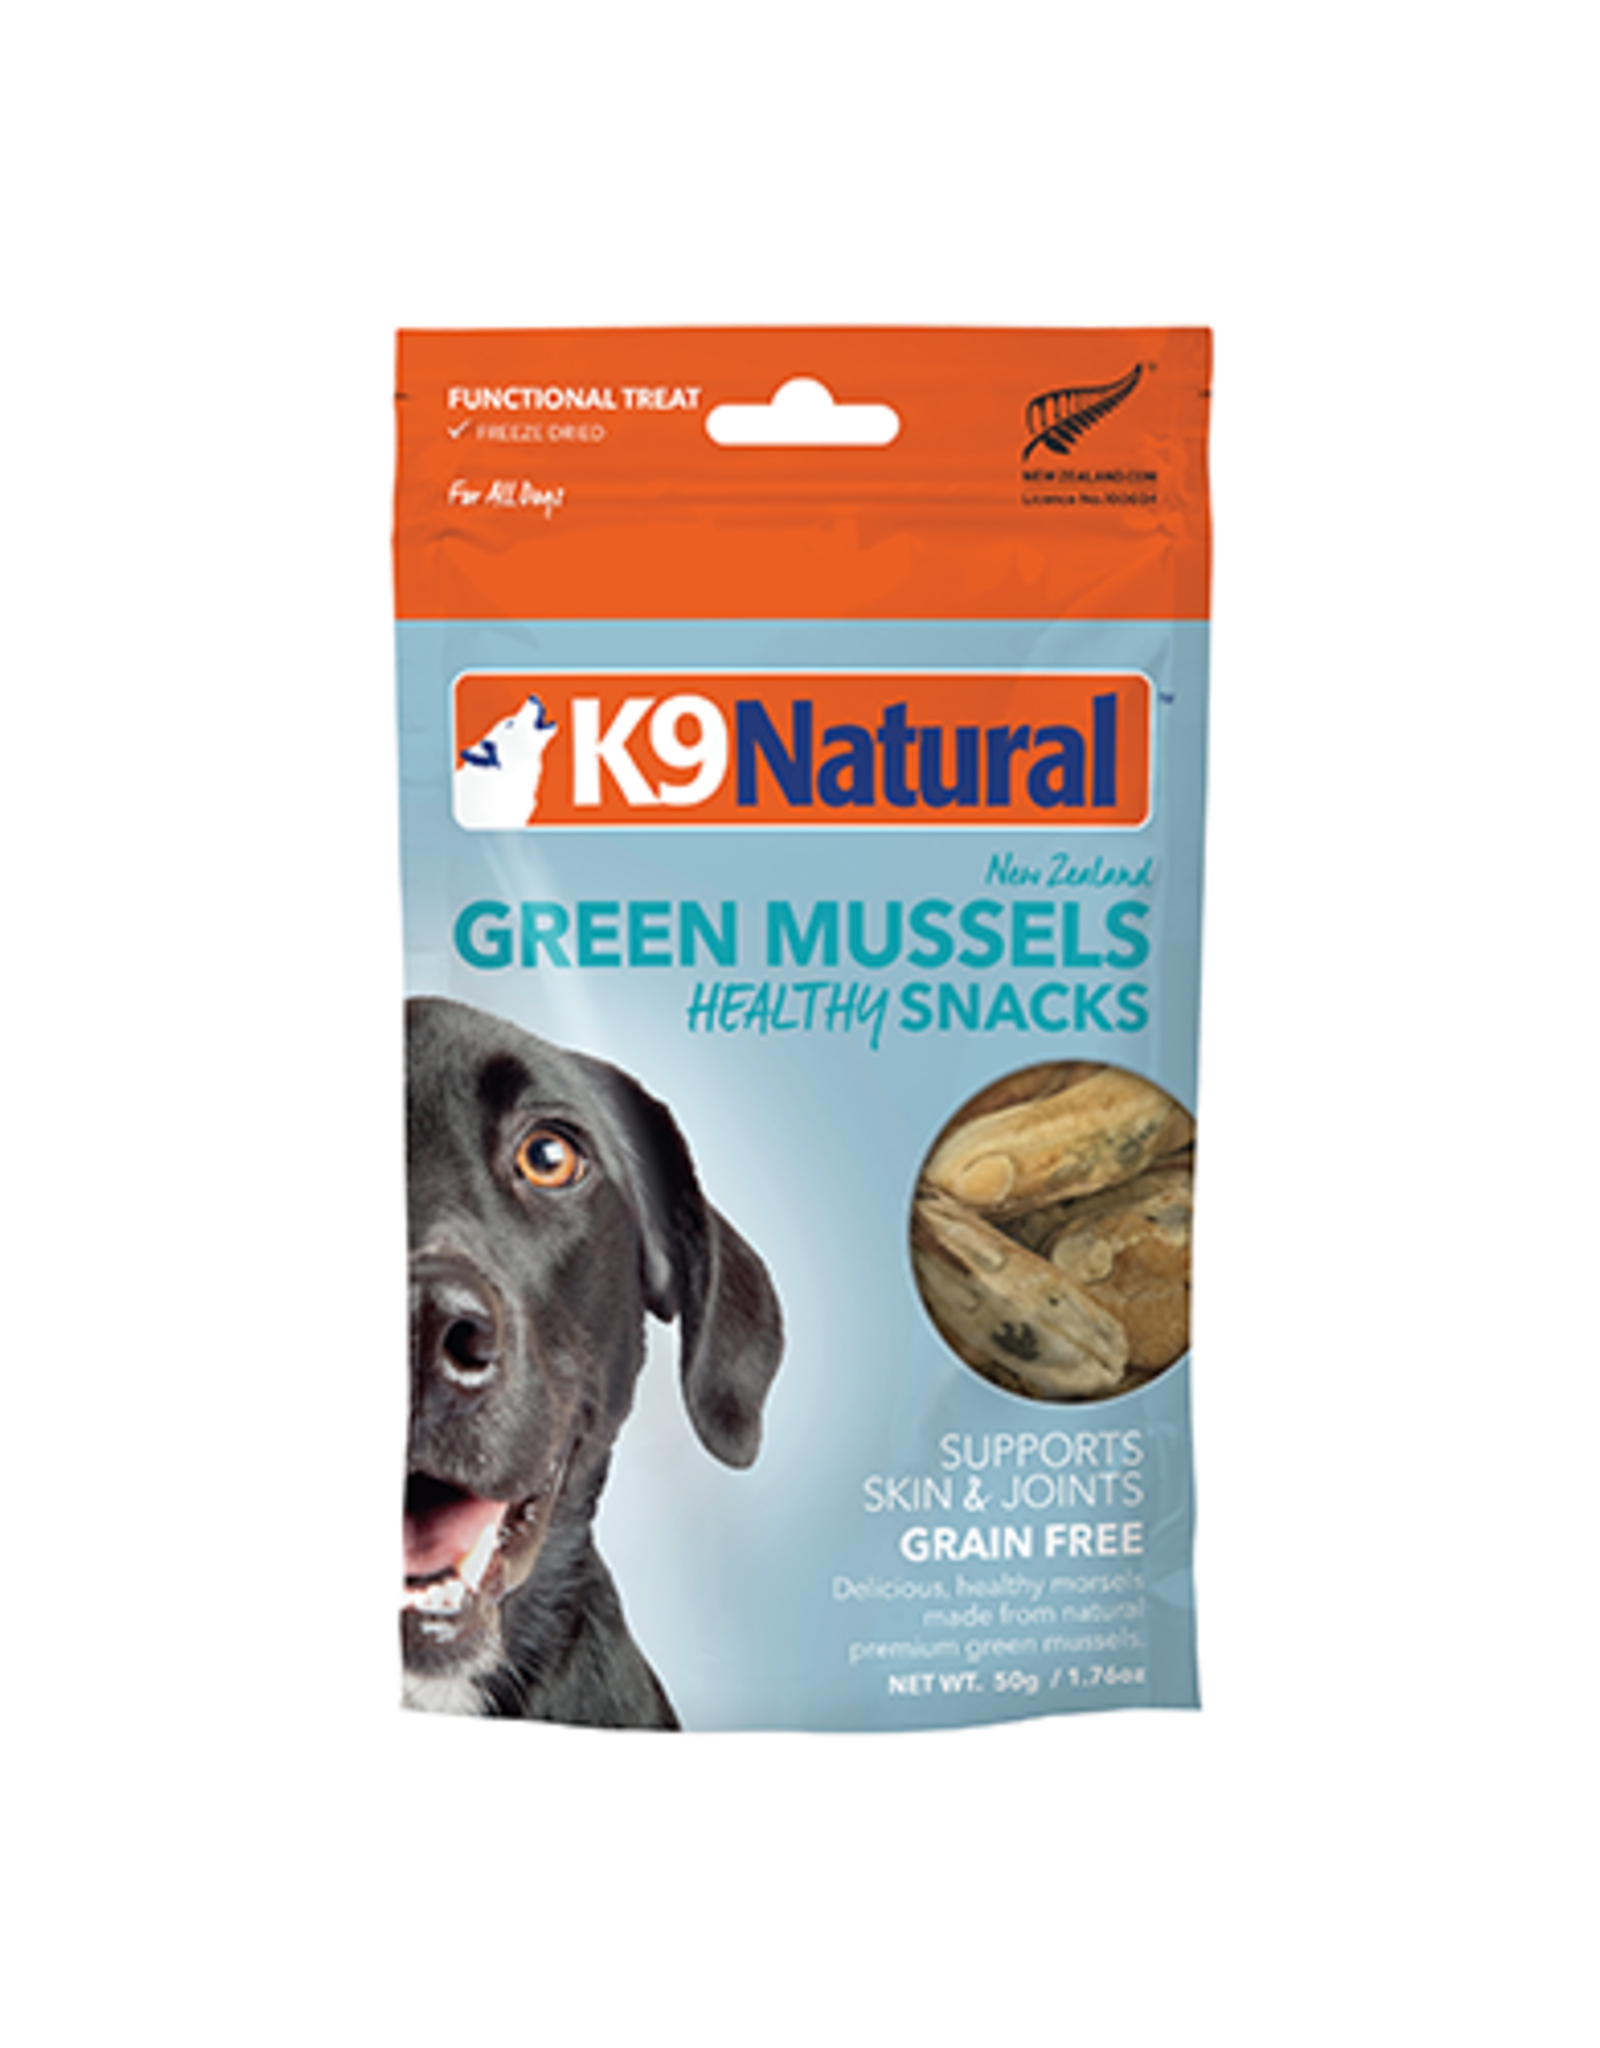 k9 Natural k9 Natural green mussels snack 50g